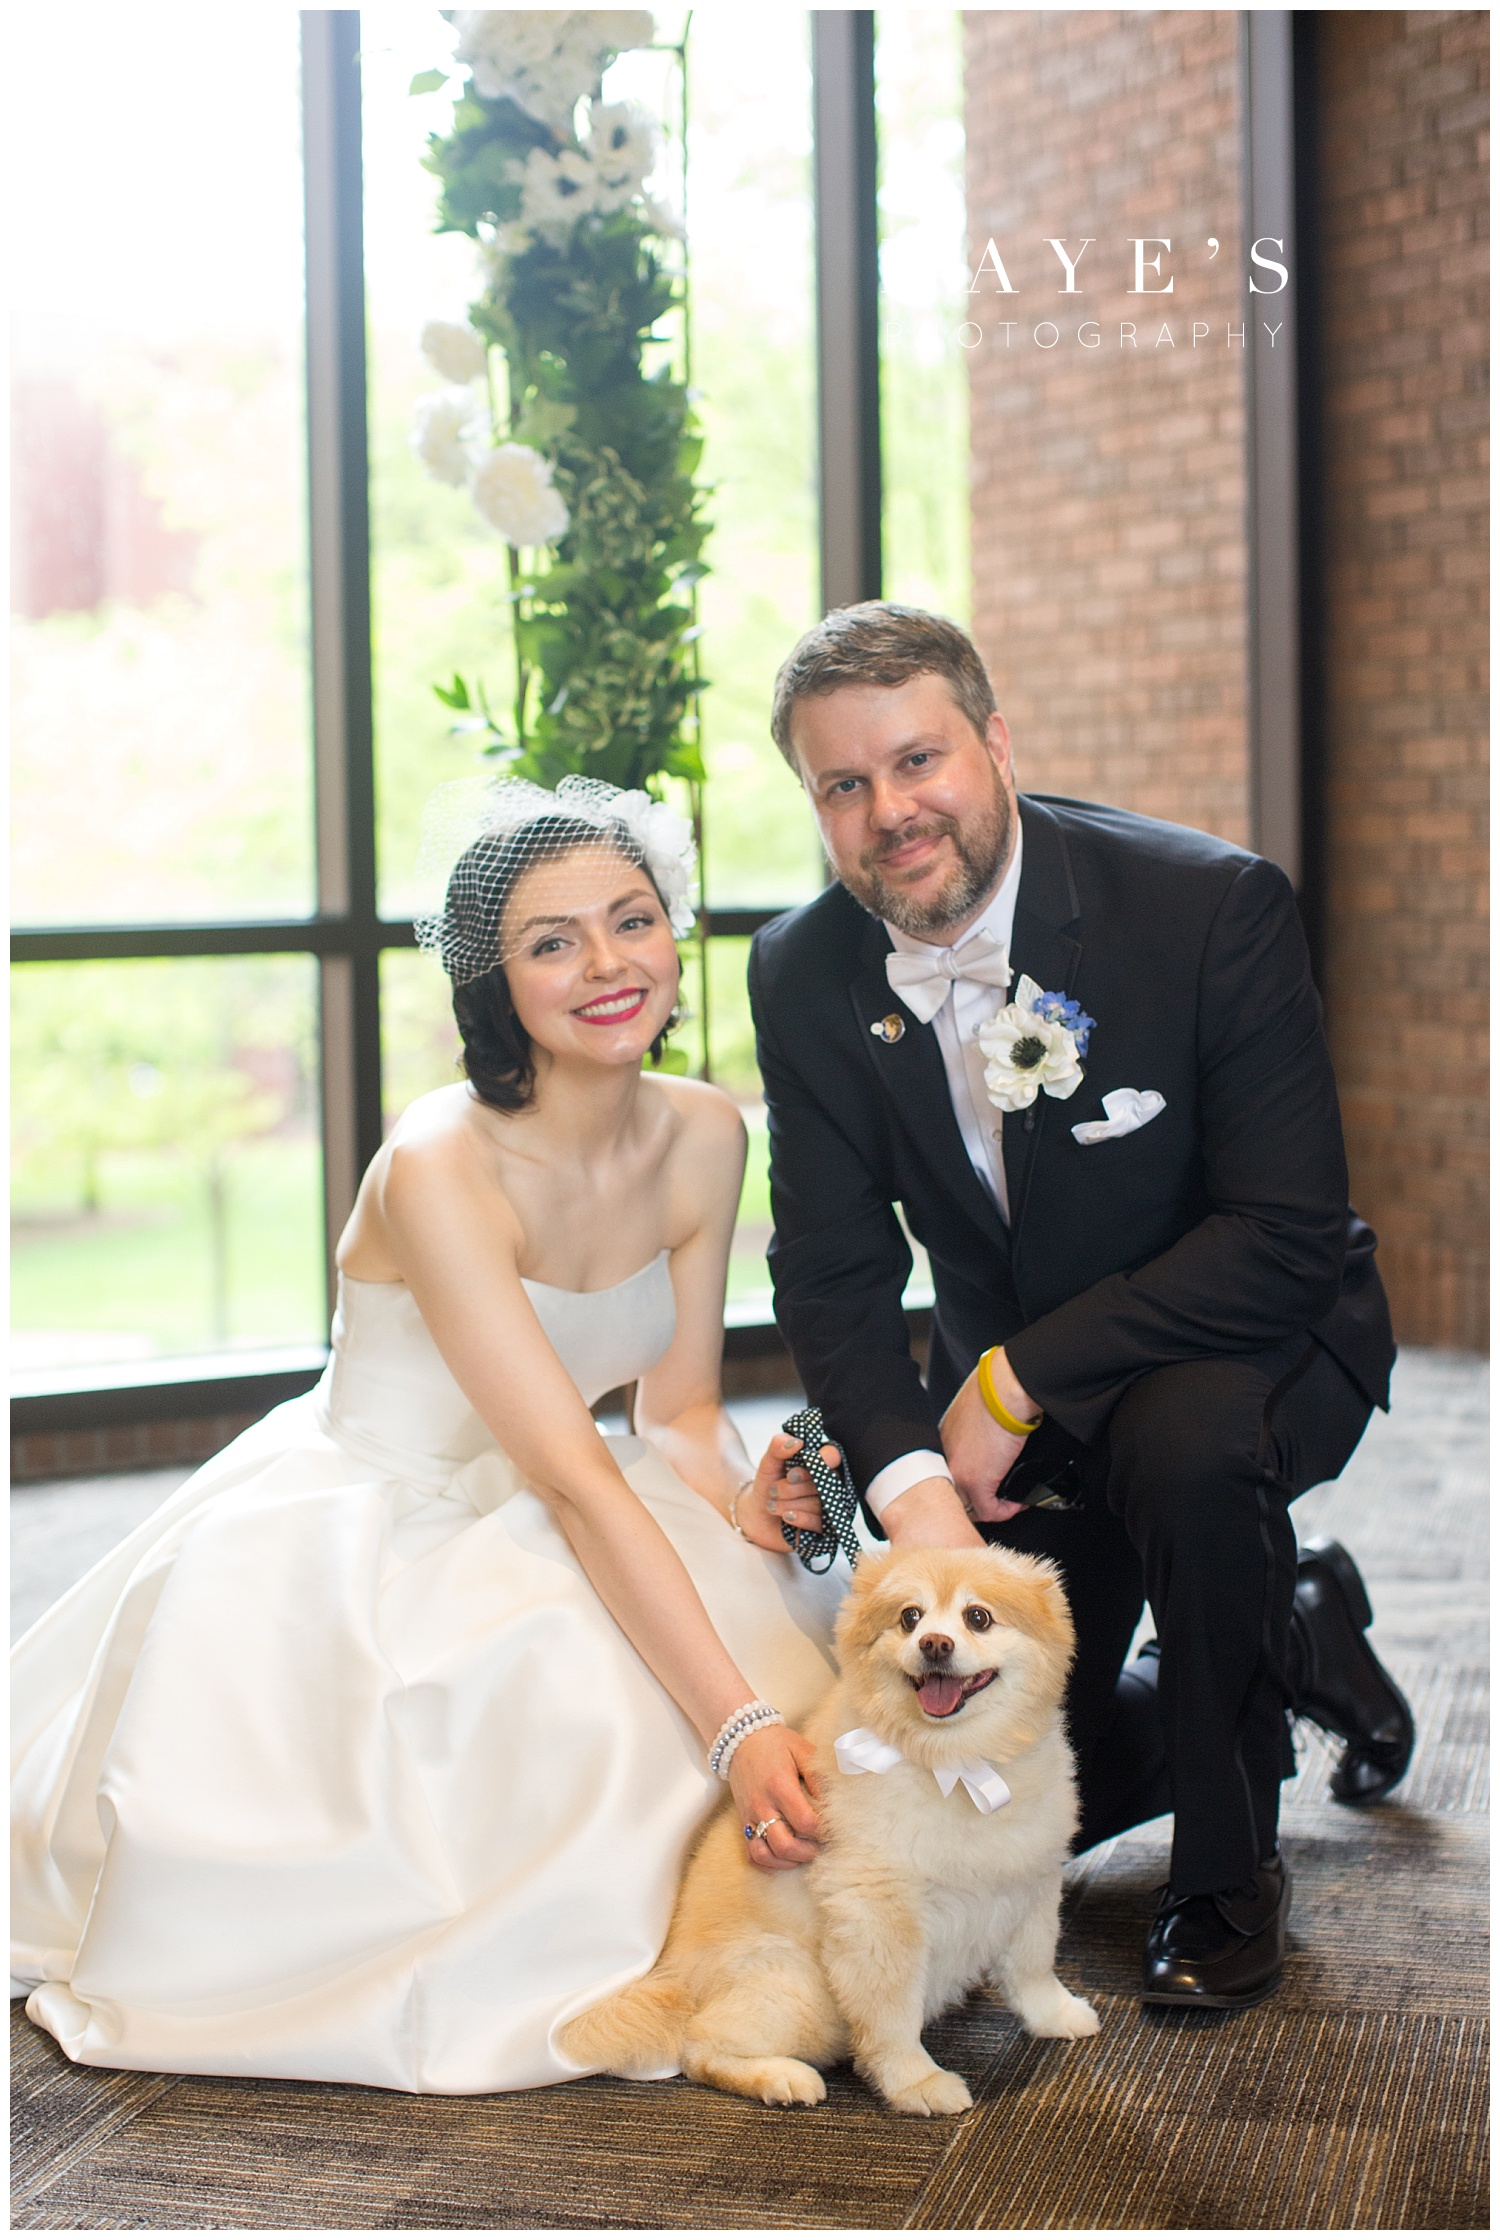 bride and groom with dog during wedding photos after the wedding ceremony